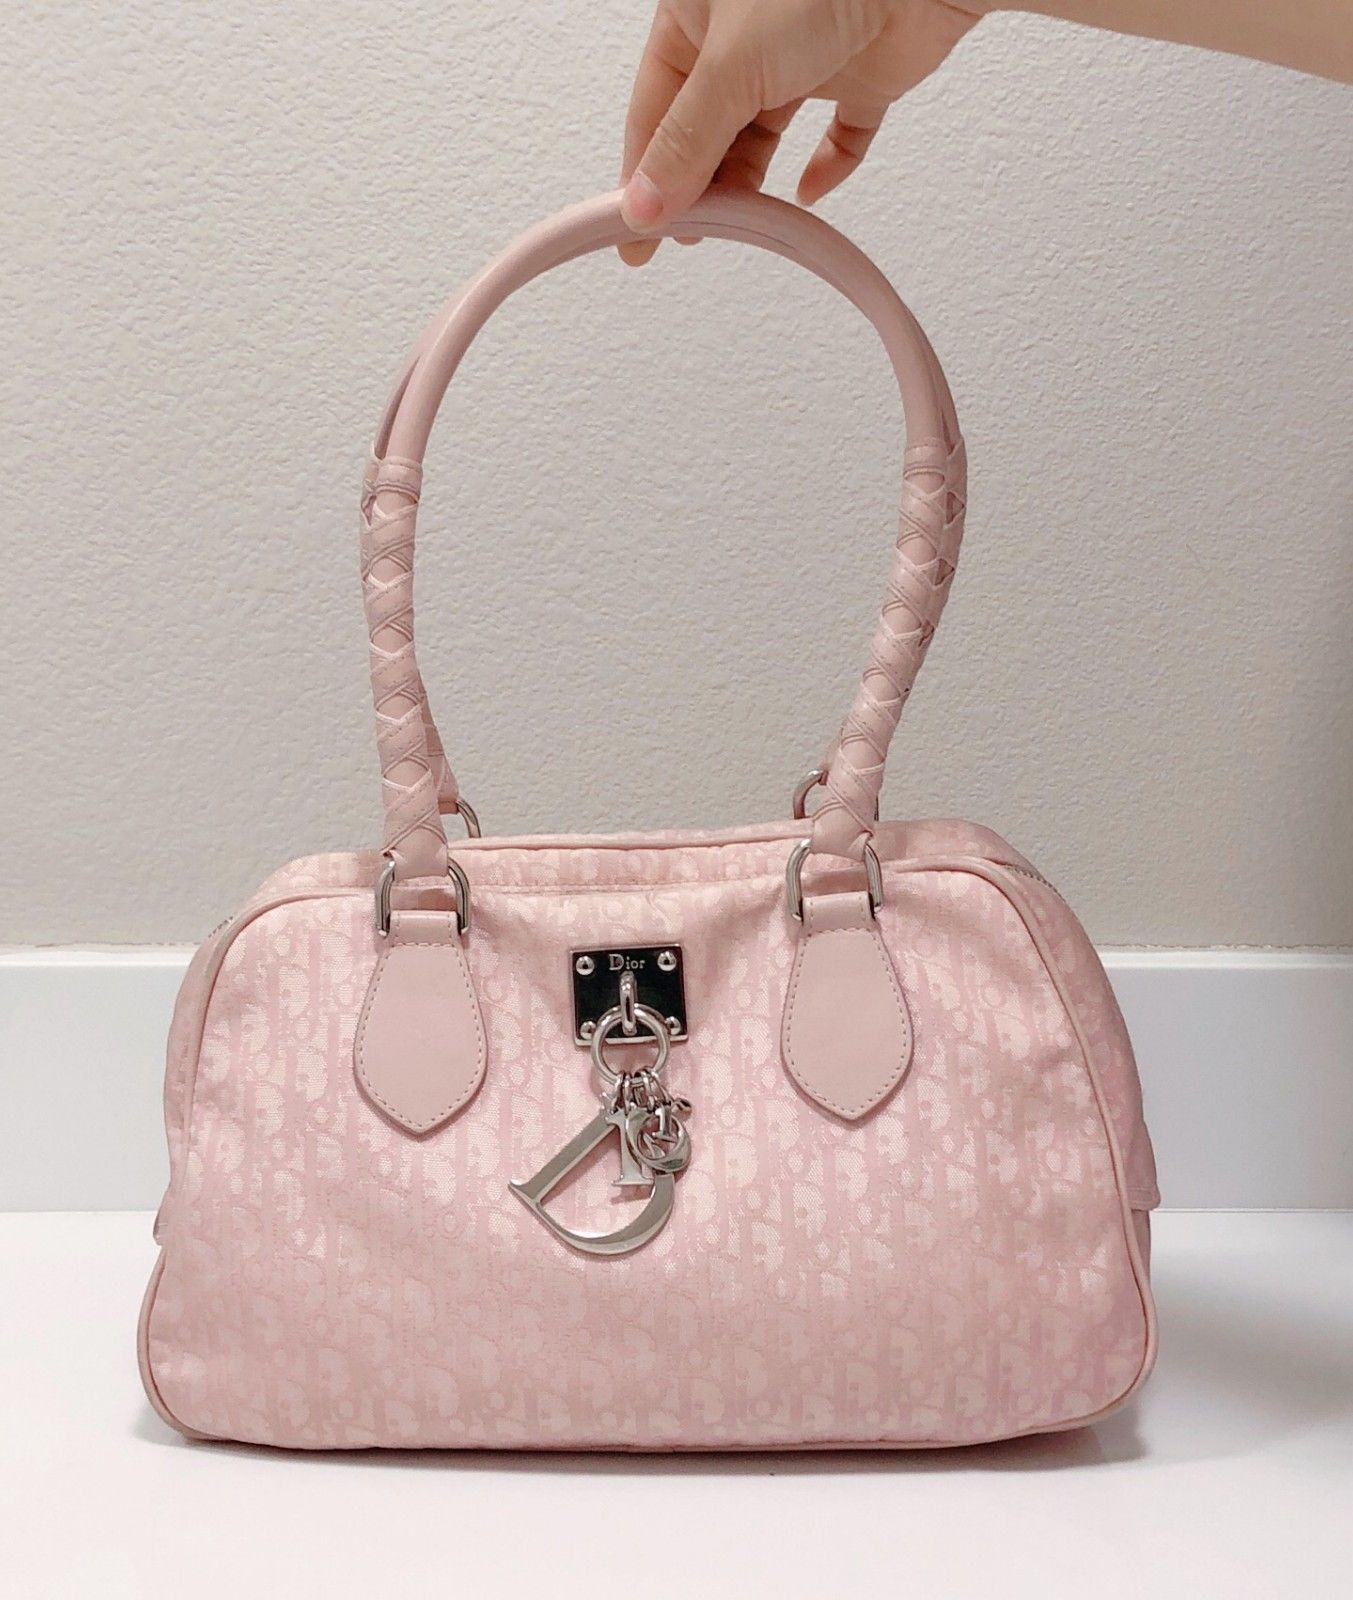 Christian Dior Trotter Pink Canvas Leather Shoulder Bag Purse Auth  02-BO-1007 24e6a4874b097